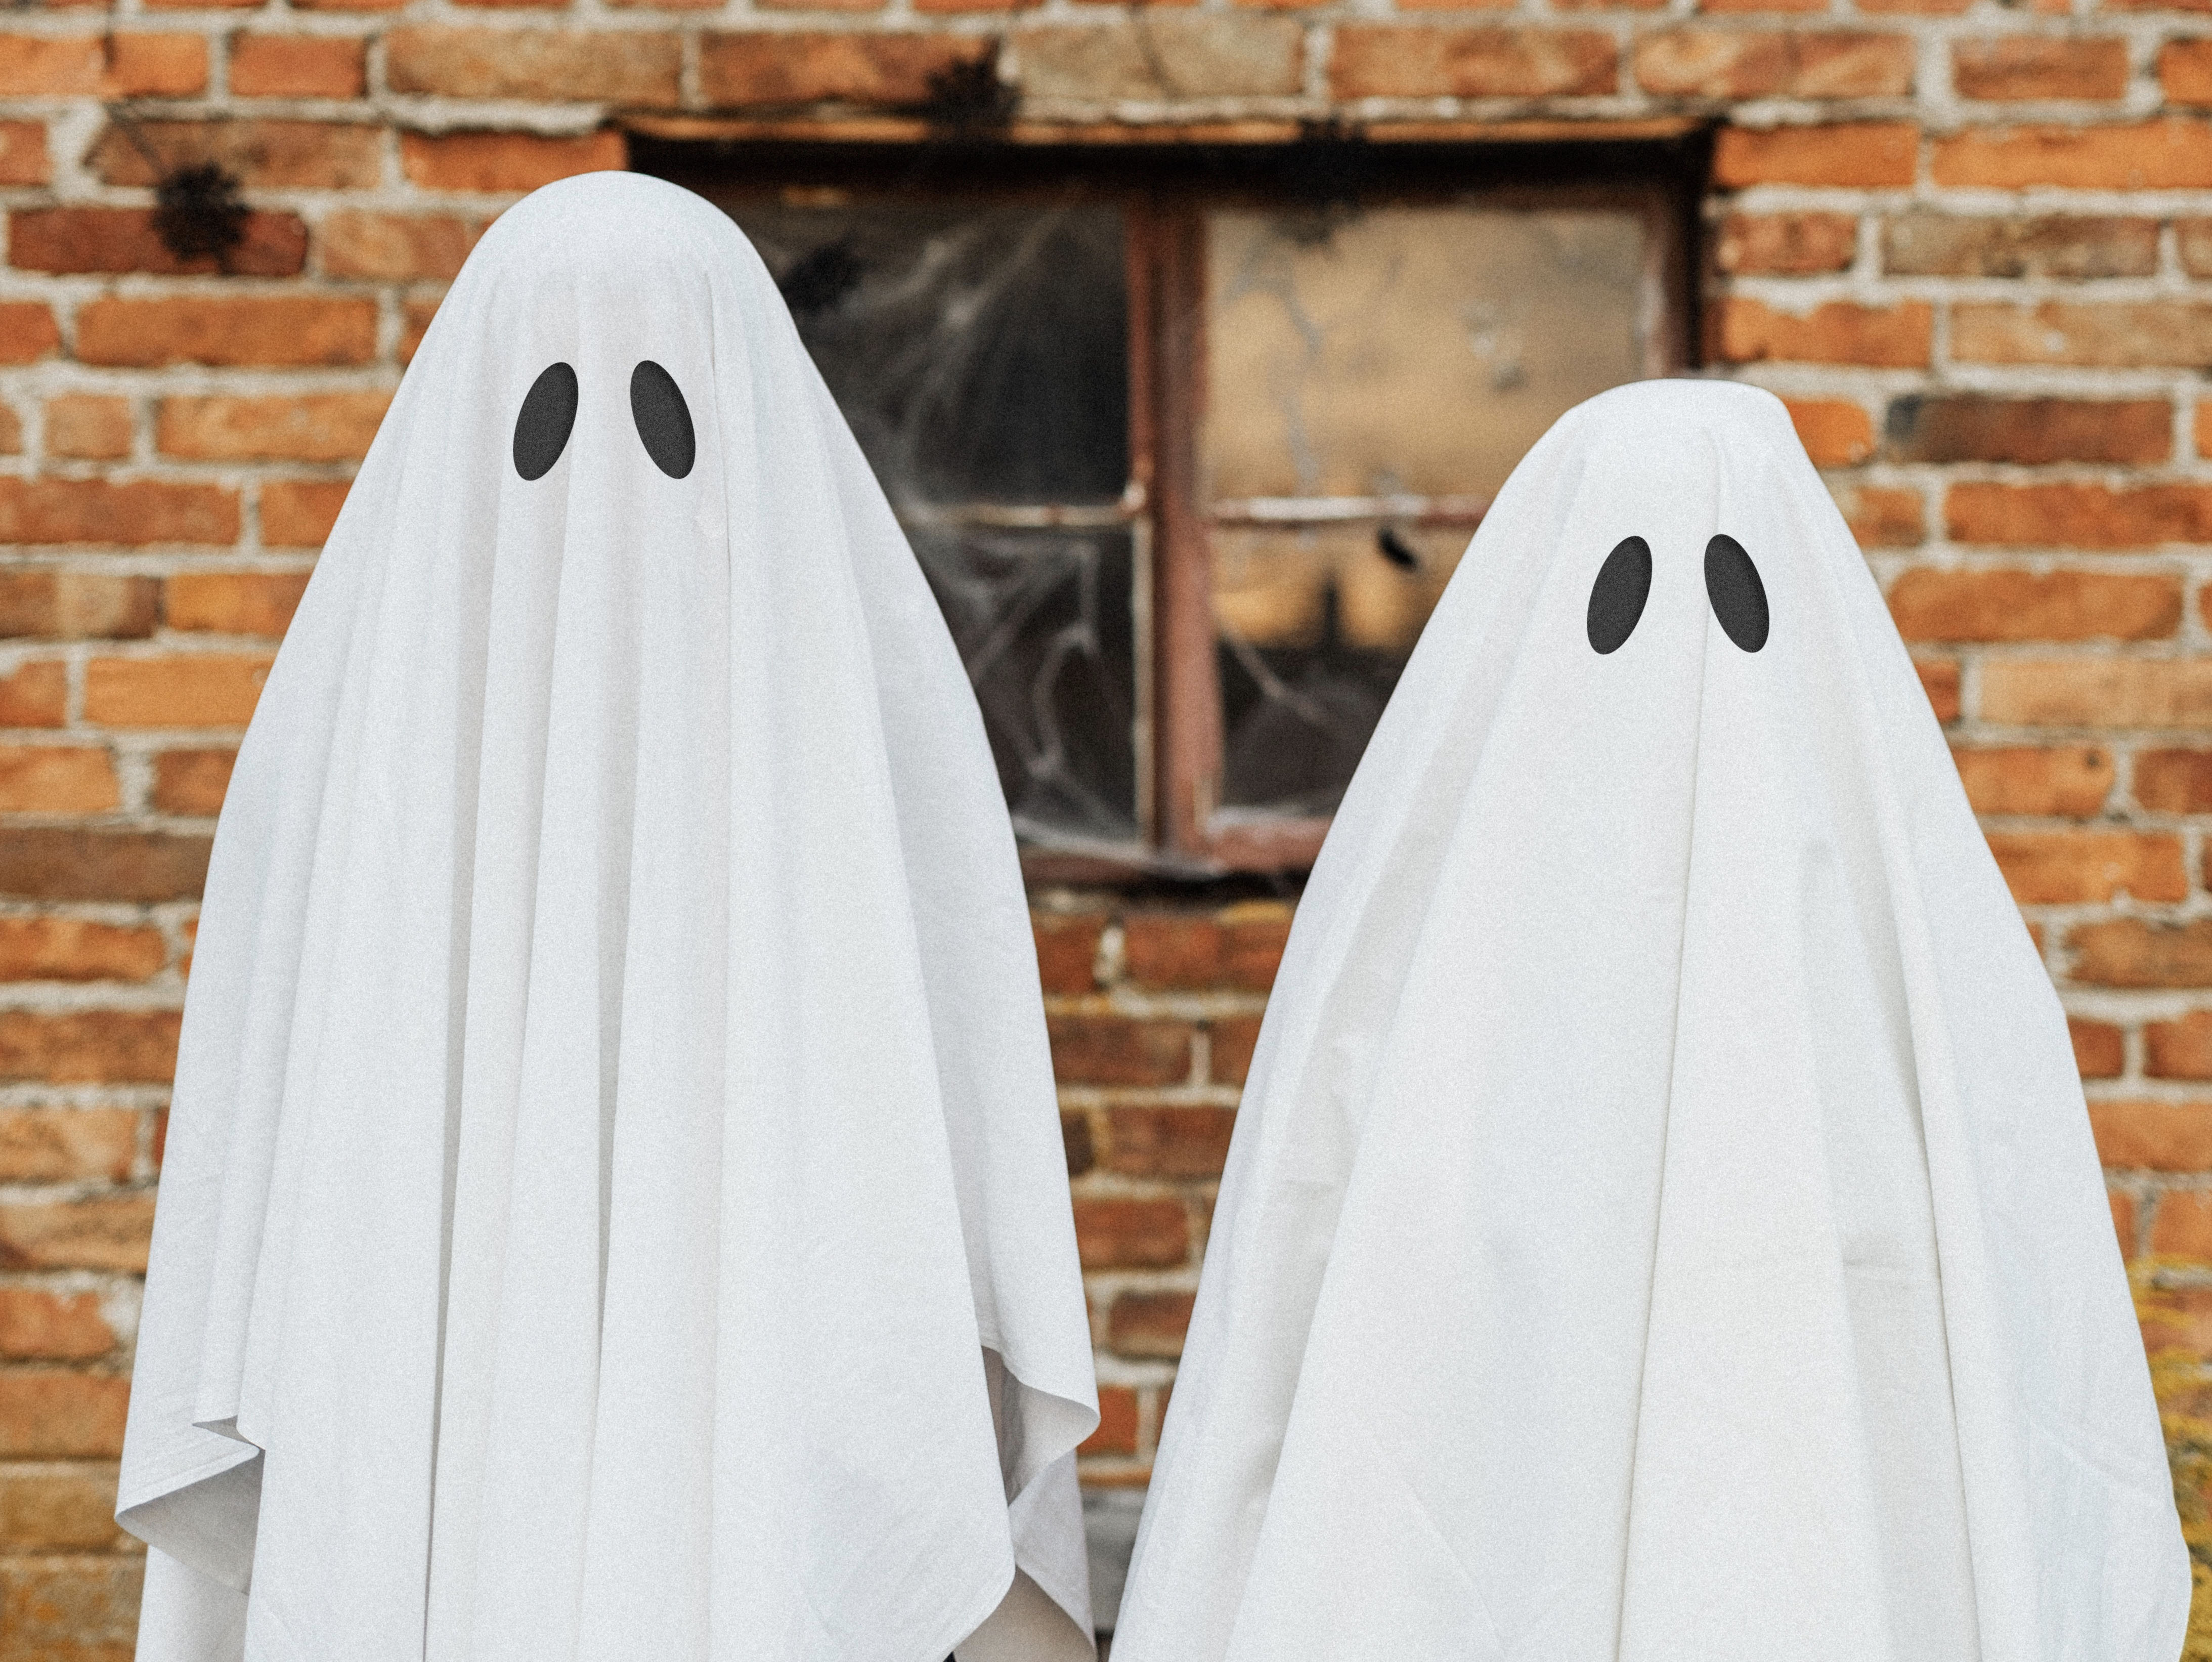 Two sheet-covered ghost costumes for Halloween.